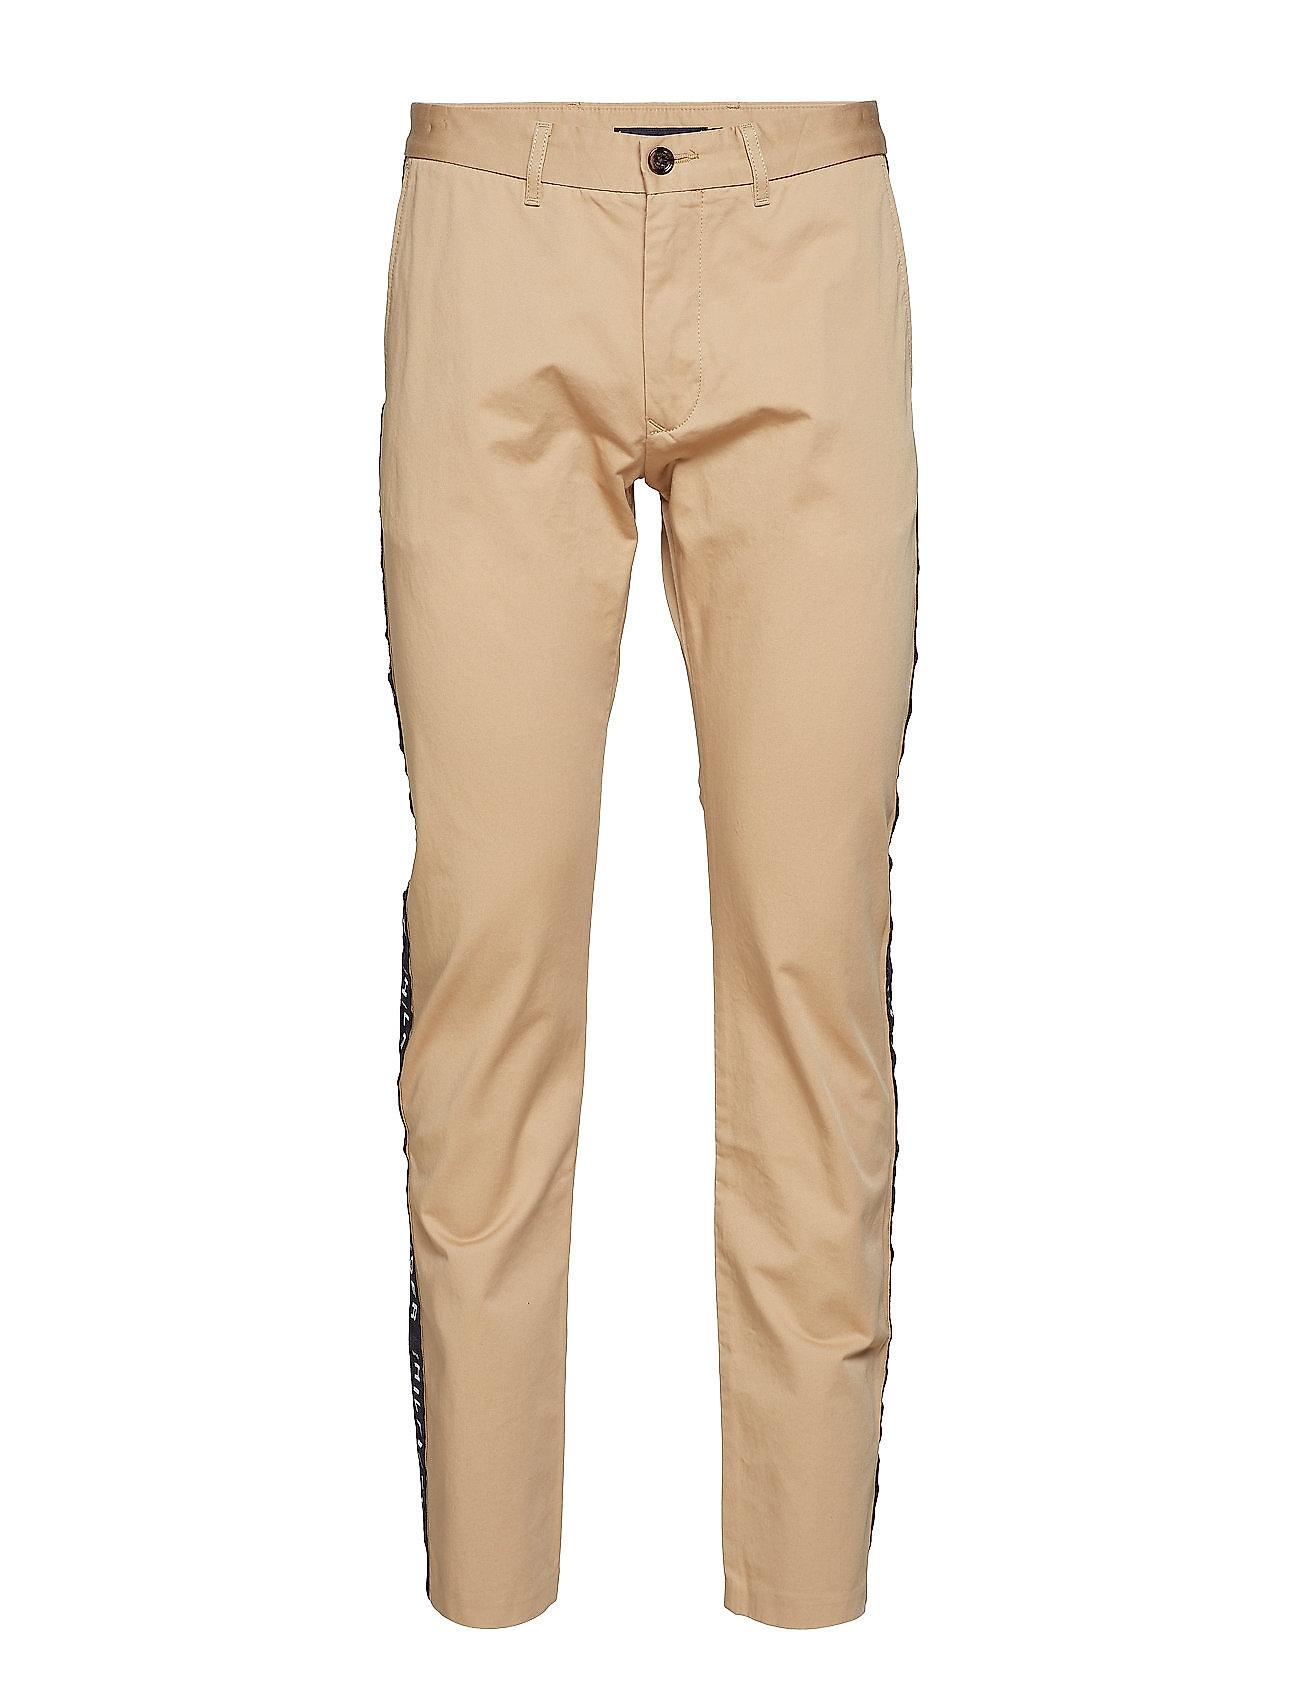 Tommy Hilfiger RELAXED CHINO SIDE T - BATIQUE KHAKI